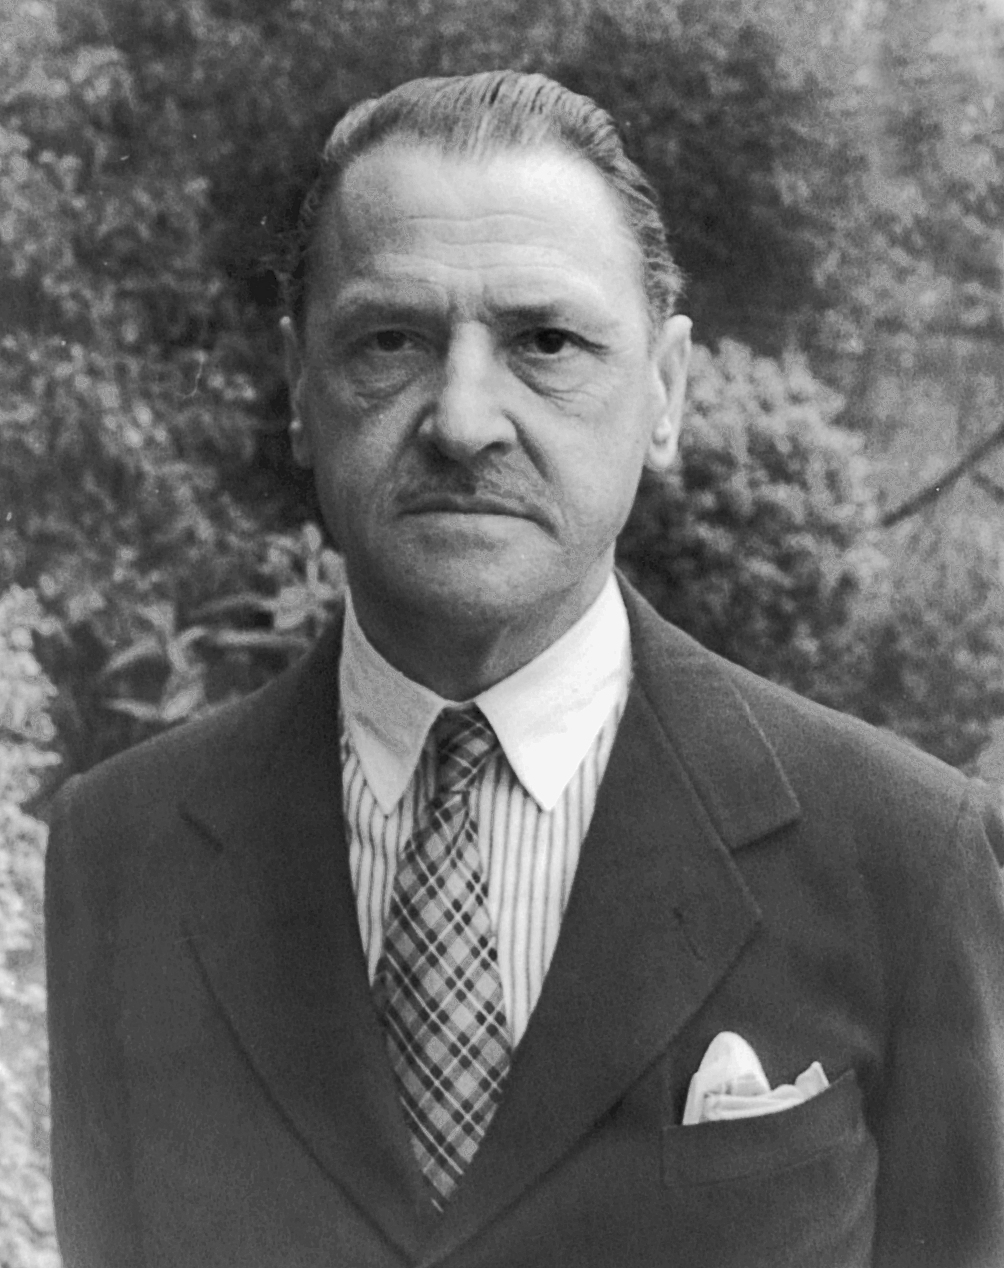 W. Somerset Maugham's quote #4